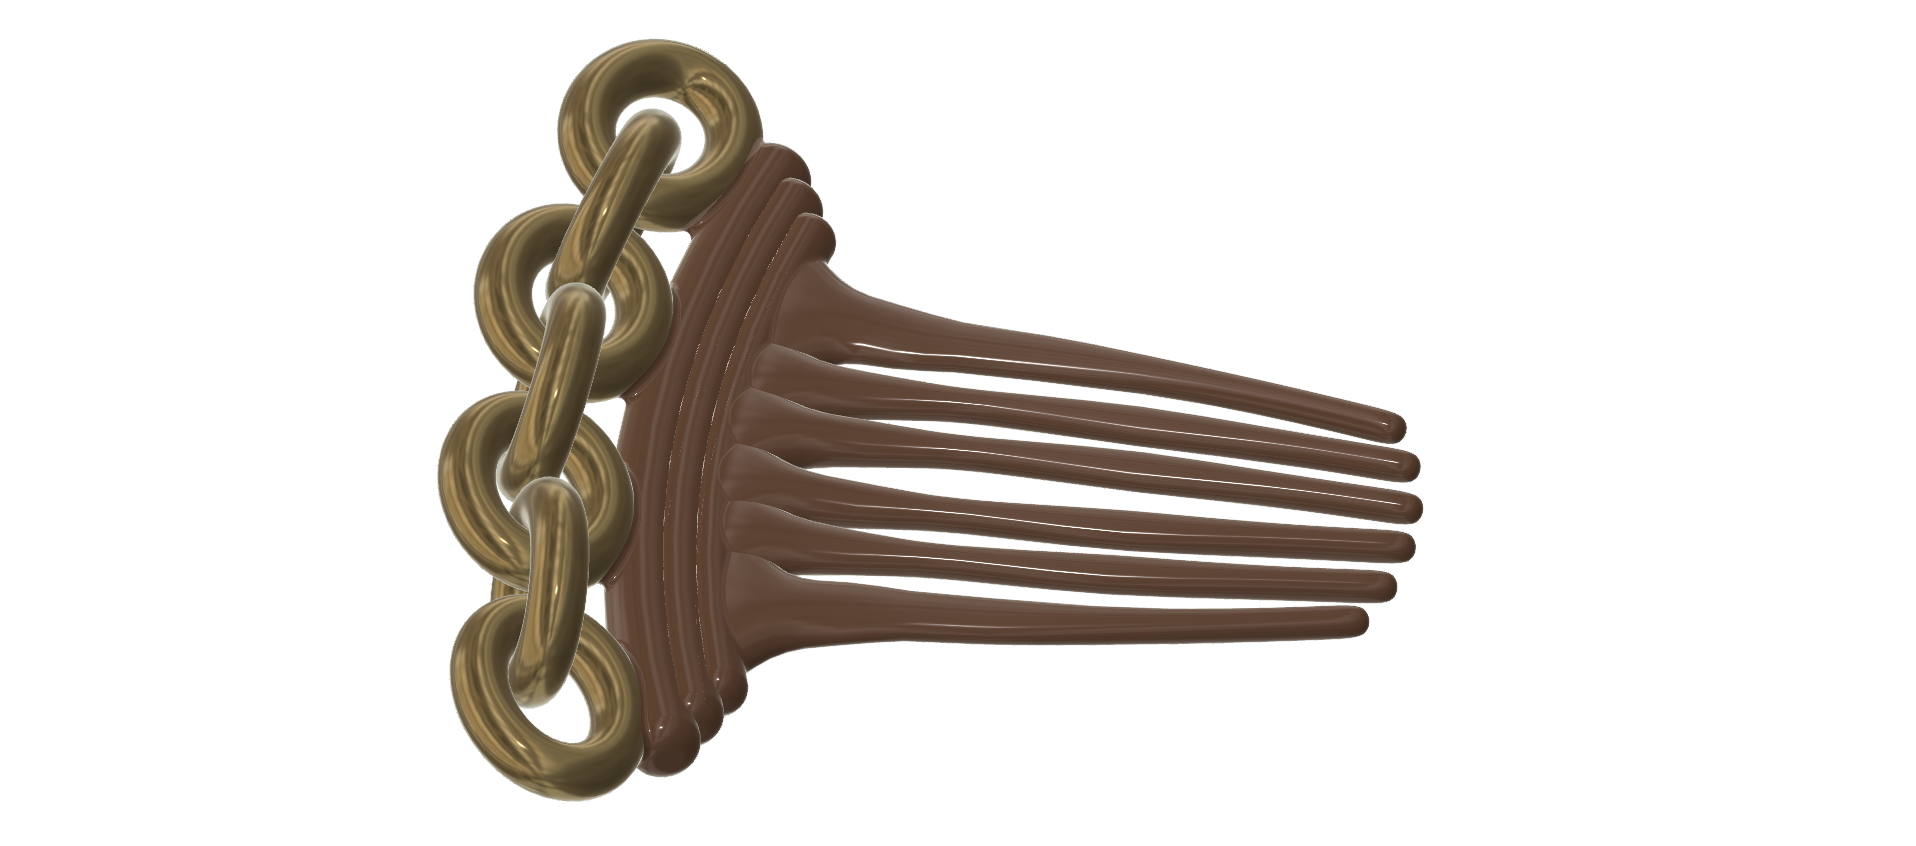 Hair-comb-10-v6-08.png Download 3MF file FRENCH PLEAT HAIR COMB Multi purpose Female Style Braiding Tool hair styling roller braid accessories for girl headdress weaving fbh-10 3d print cnc • 3D printable object, Dzusto